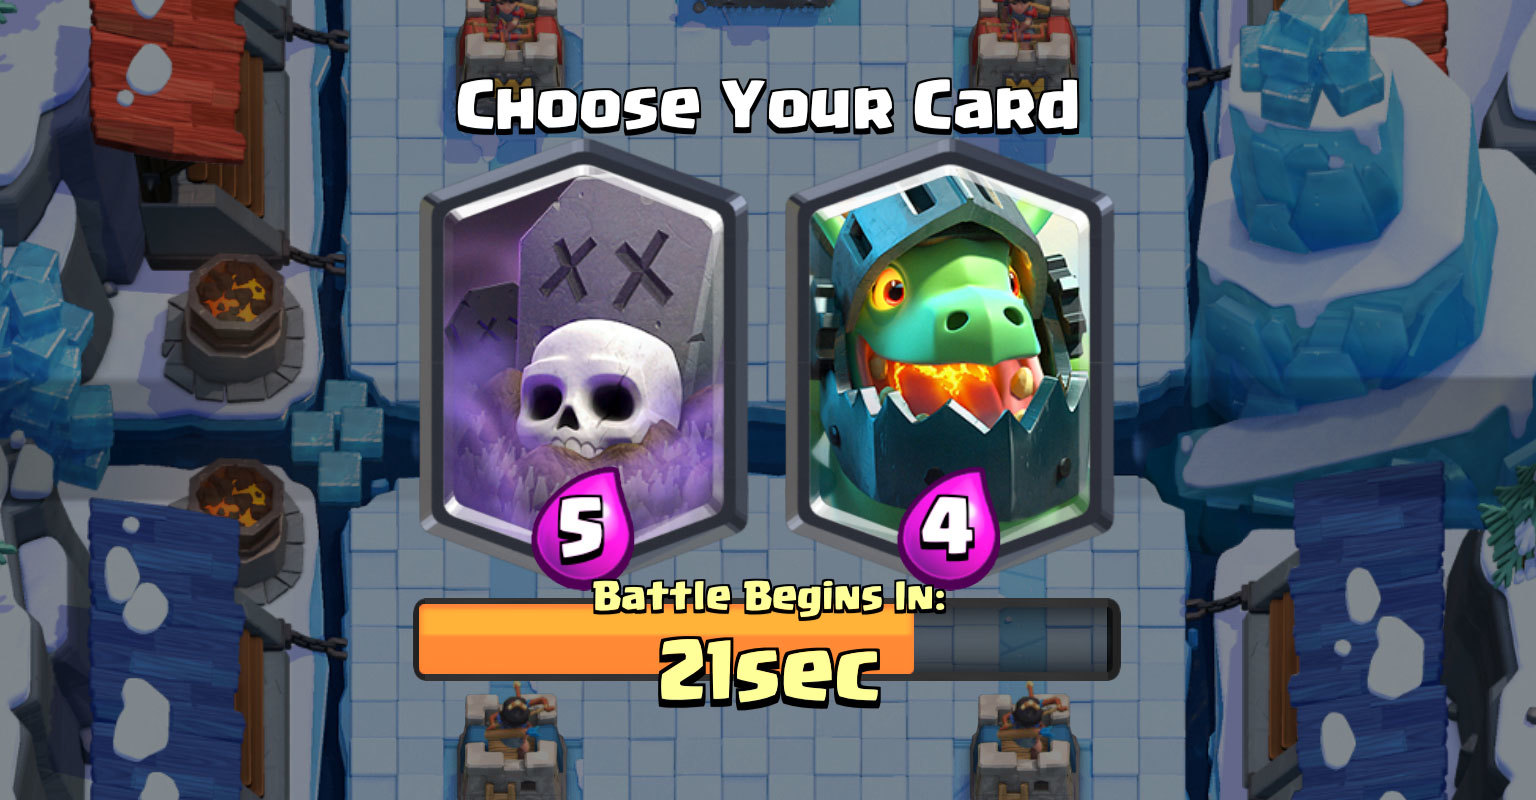 Draft Mode in Clash Royale